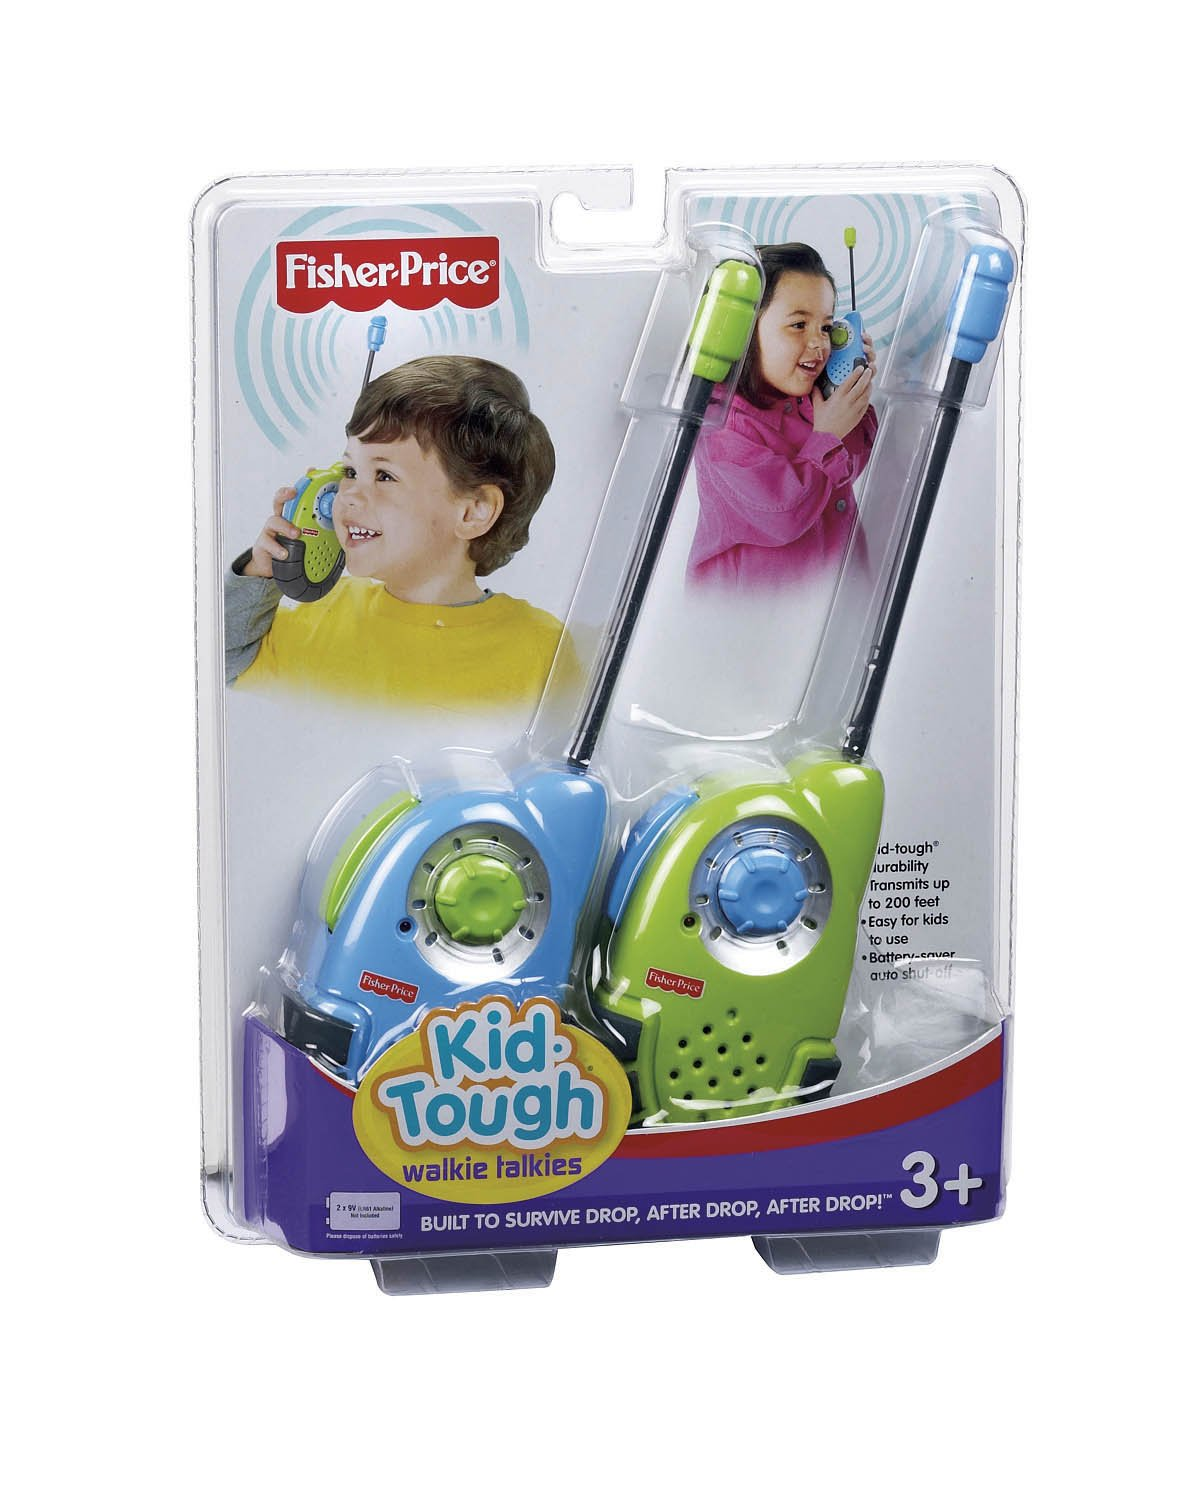 Fisher-Price Kid-Tough Walkie Talkies (Colors May Vary) by Fisher-Price (Image #5)